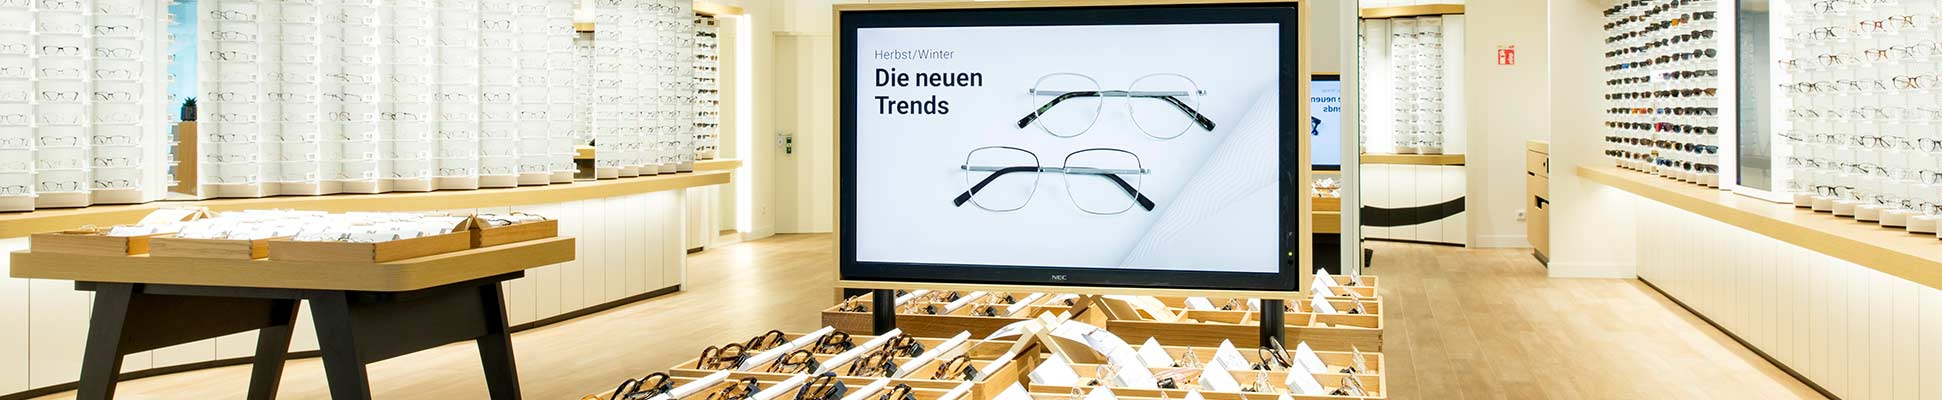 Mister Spex Optiker Hamburg Altona